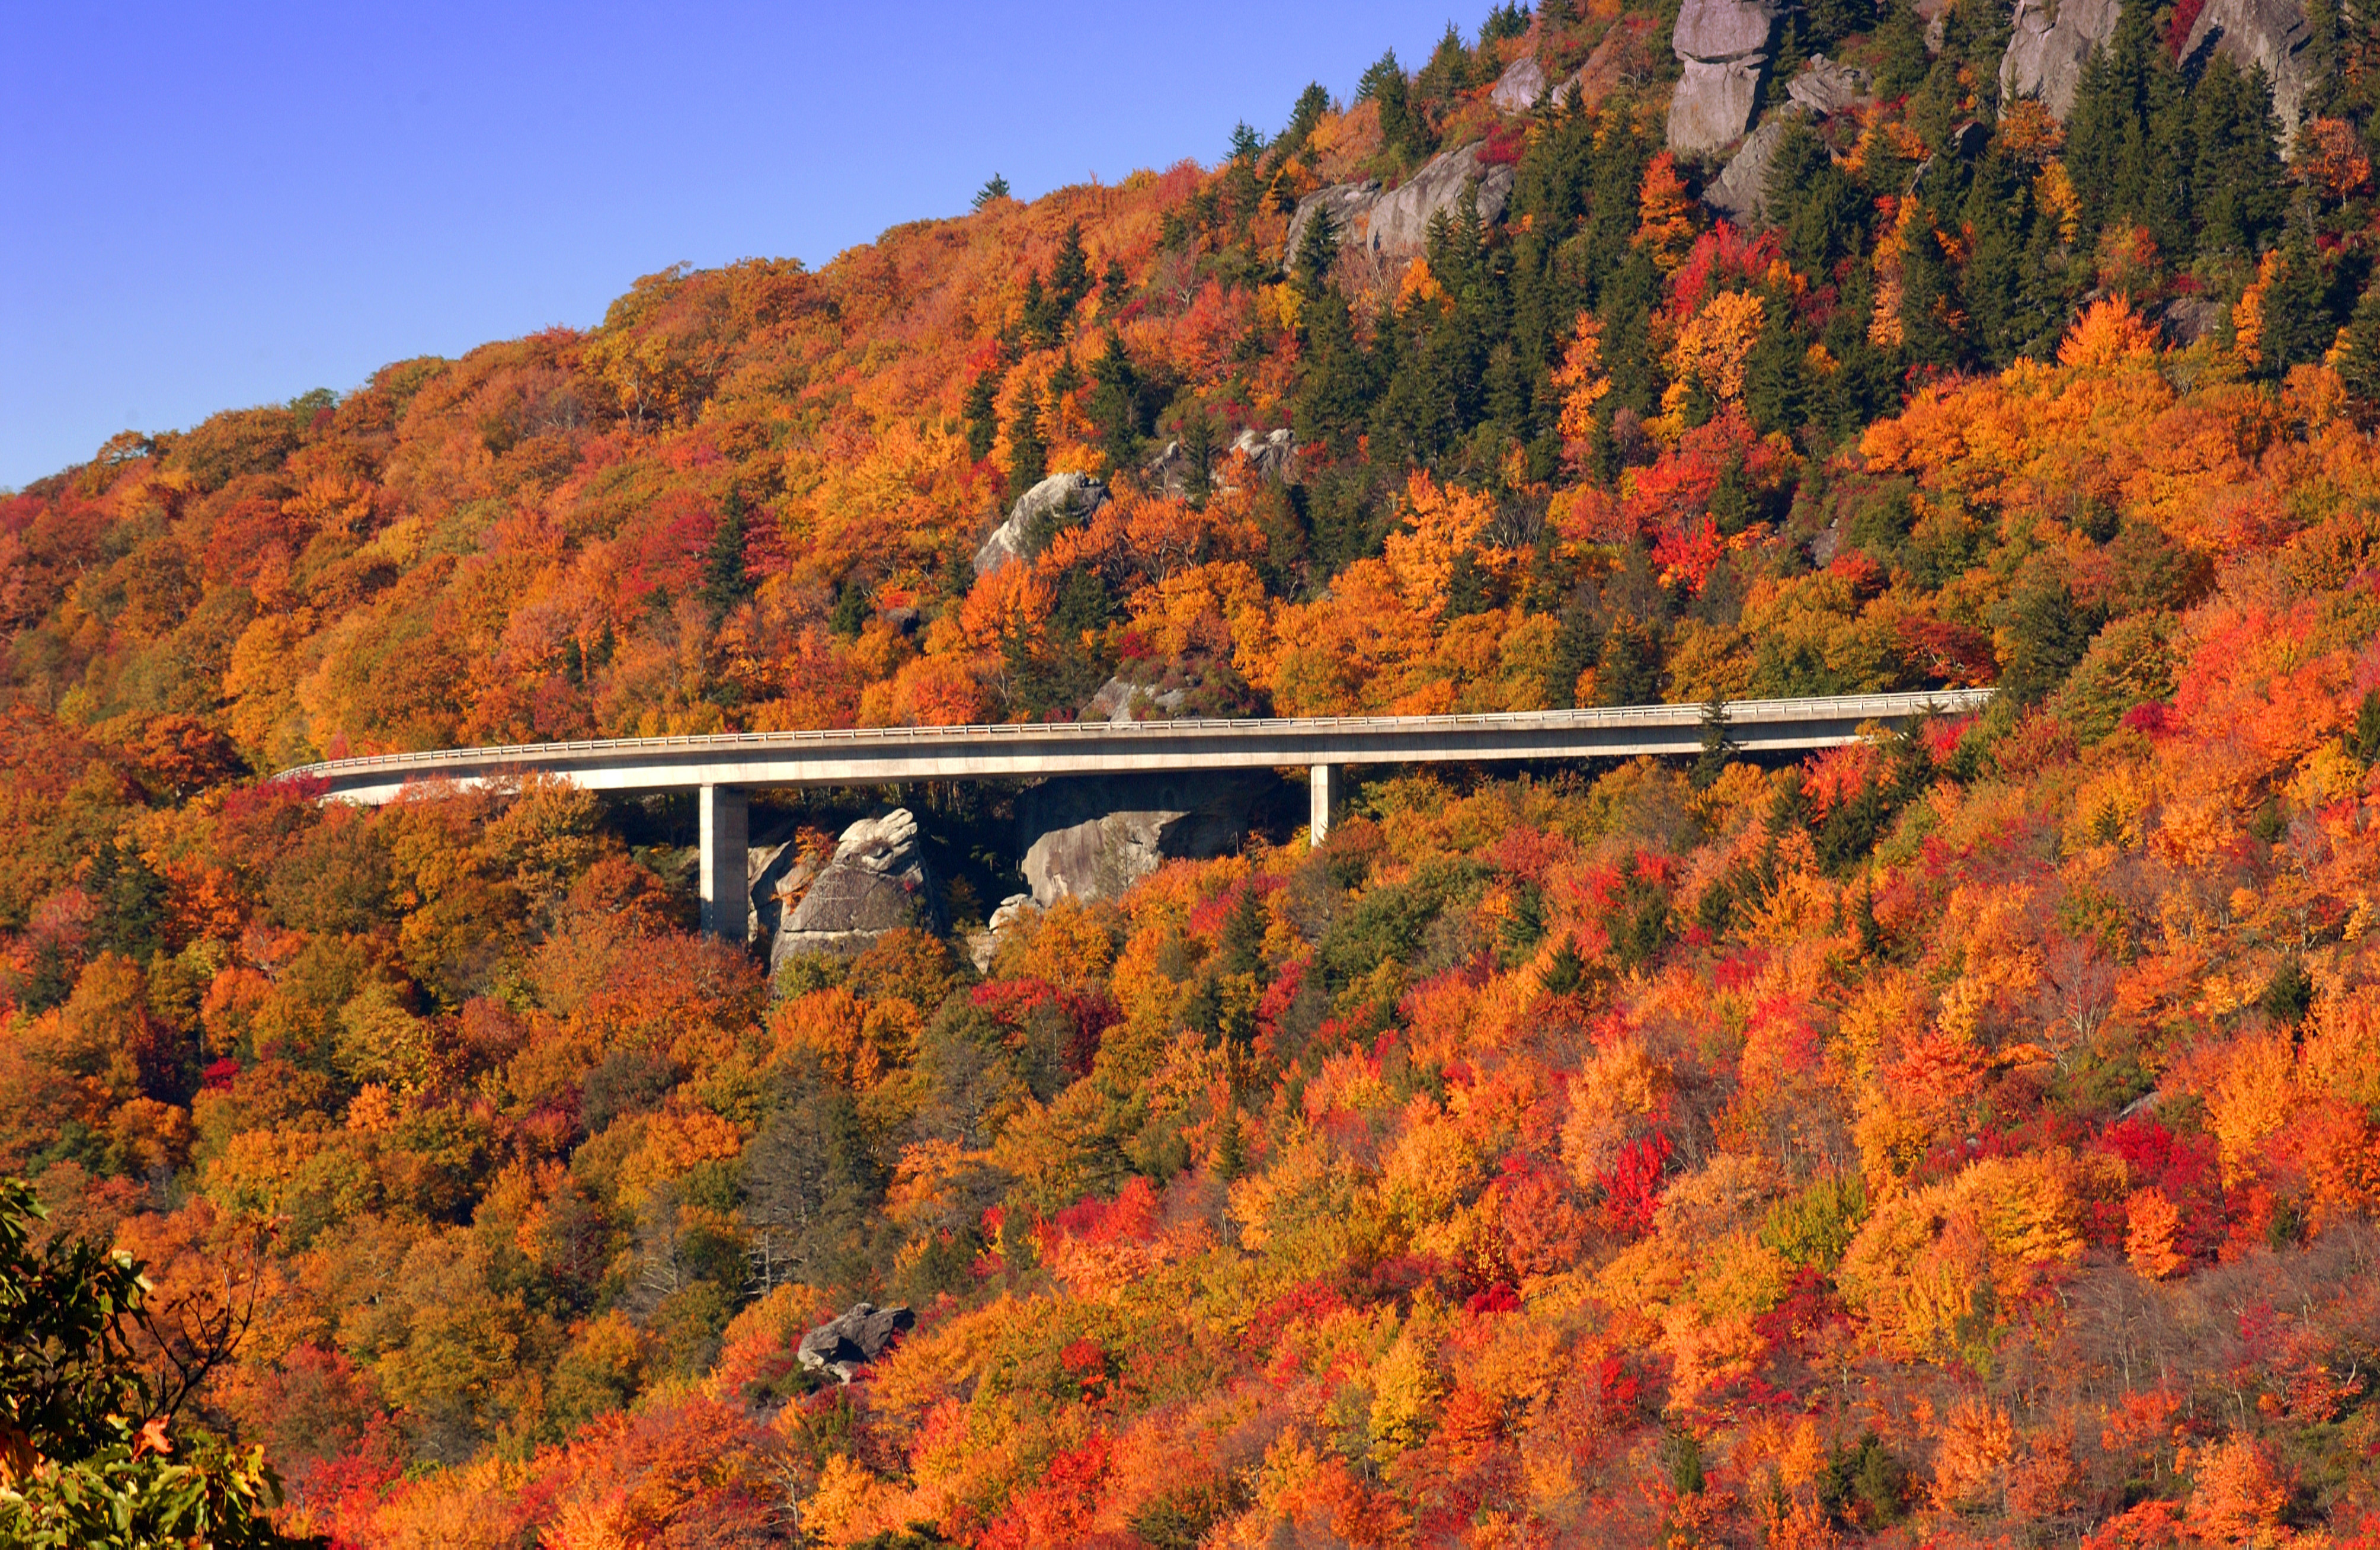 The Linn Cove Viaduct crosses fall foliage on the Blue Ridge Parkway in North Carollina.